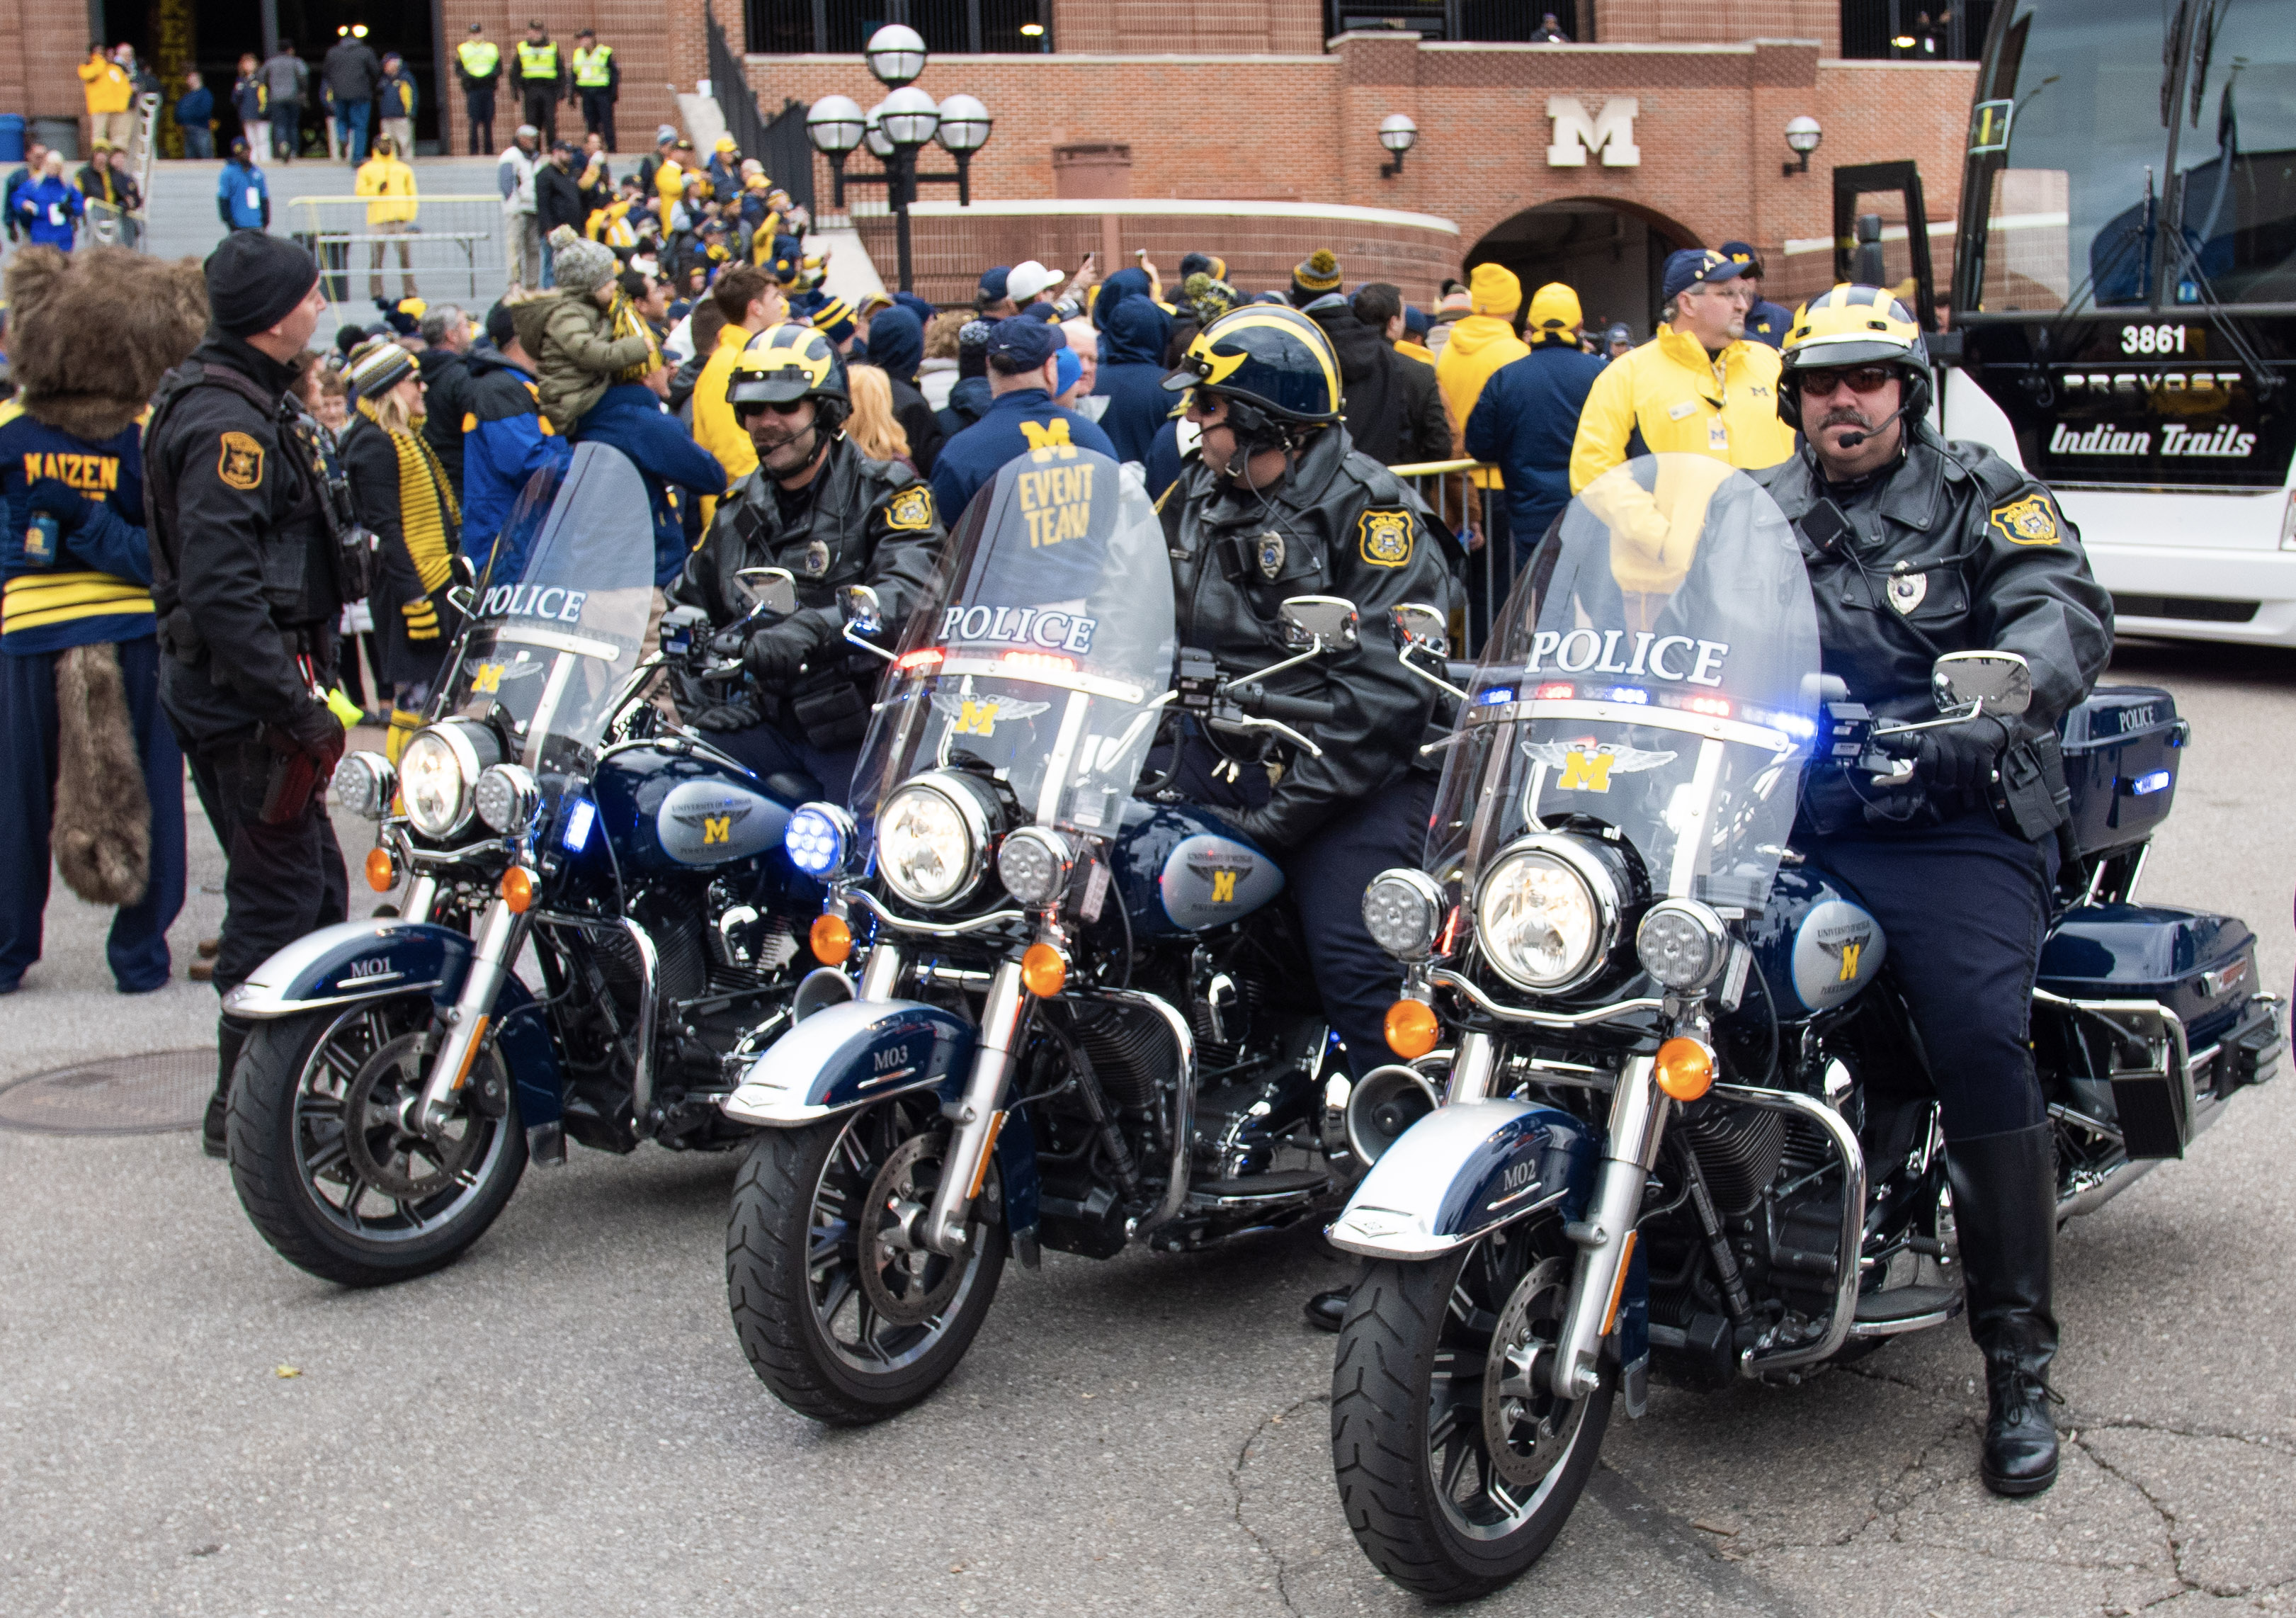 Police Motorcycle Team on Game Day